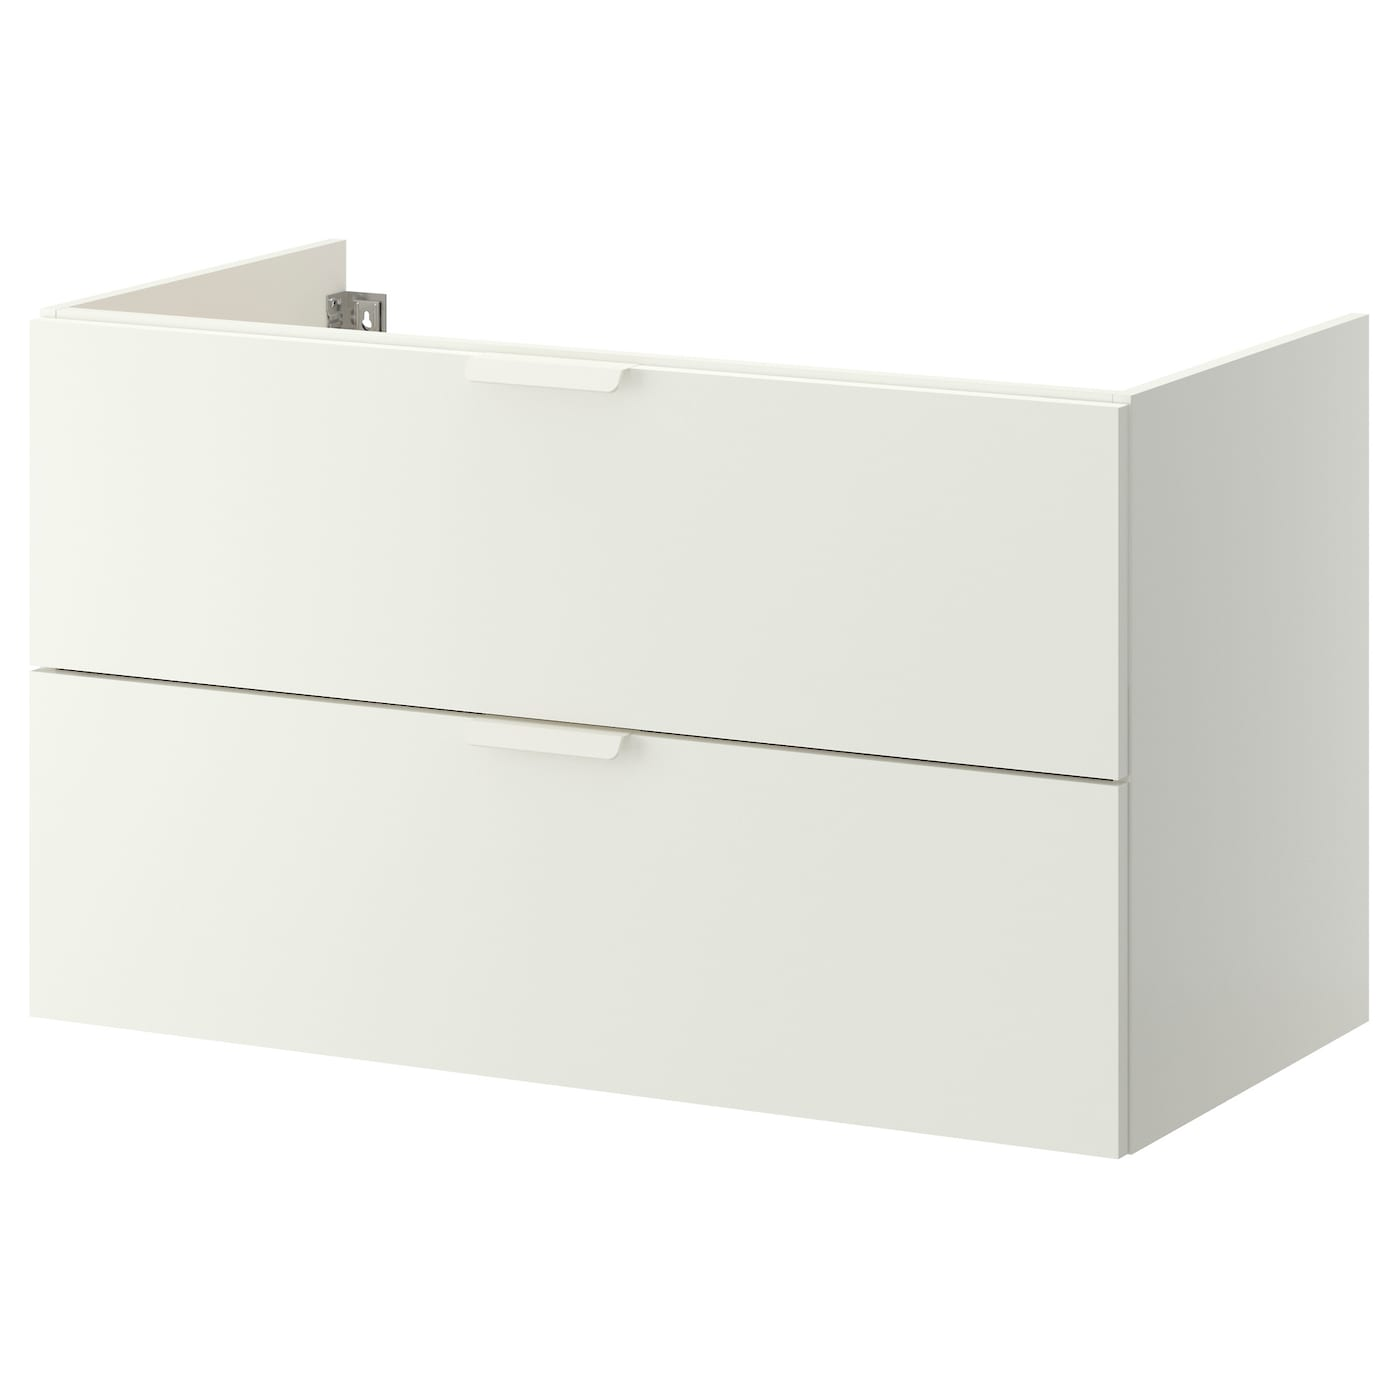 Godmorgon Sink Cabinet With 2 Drawers White 39 3 8x18 1 2x22 7 8 Ikea